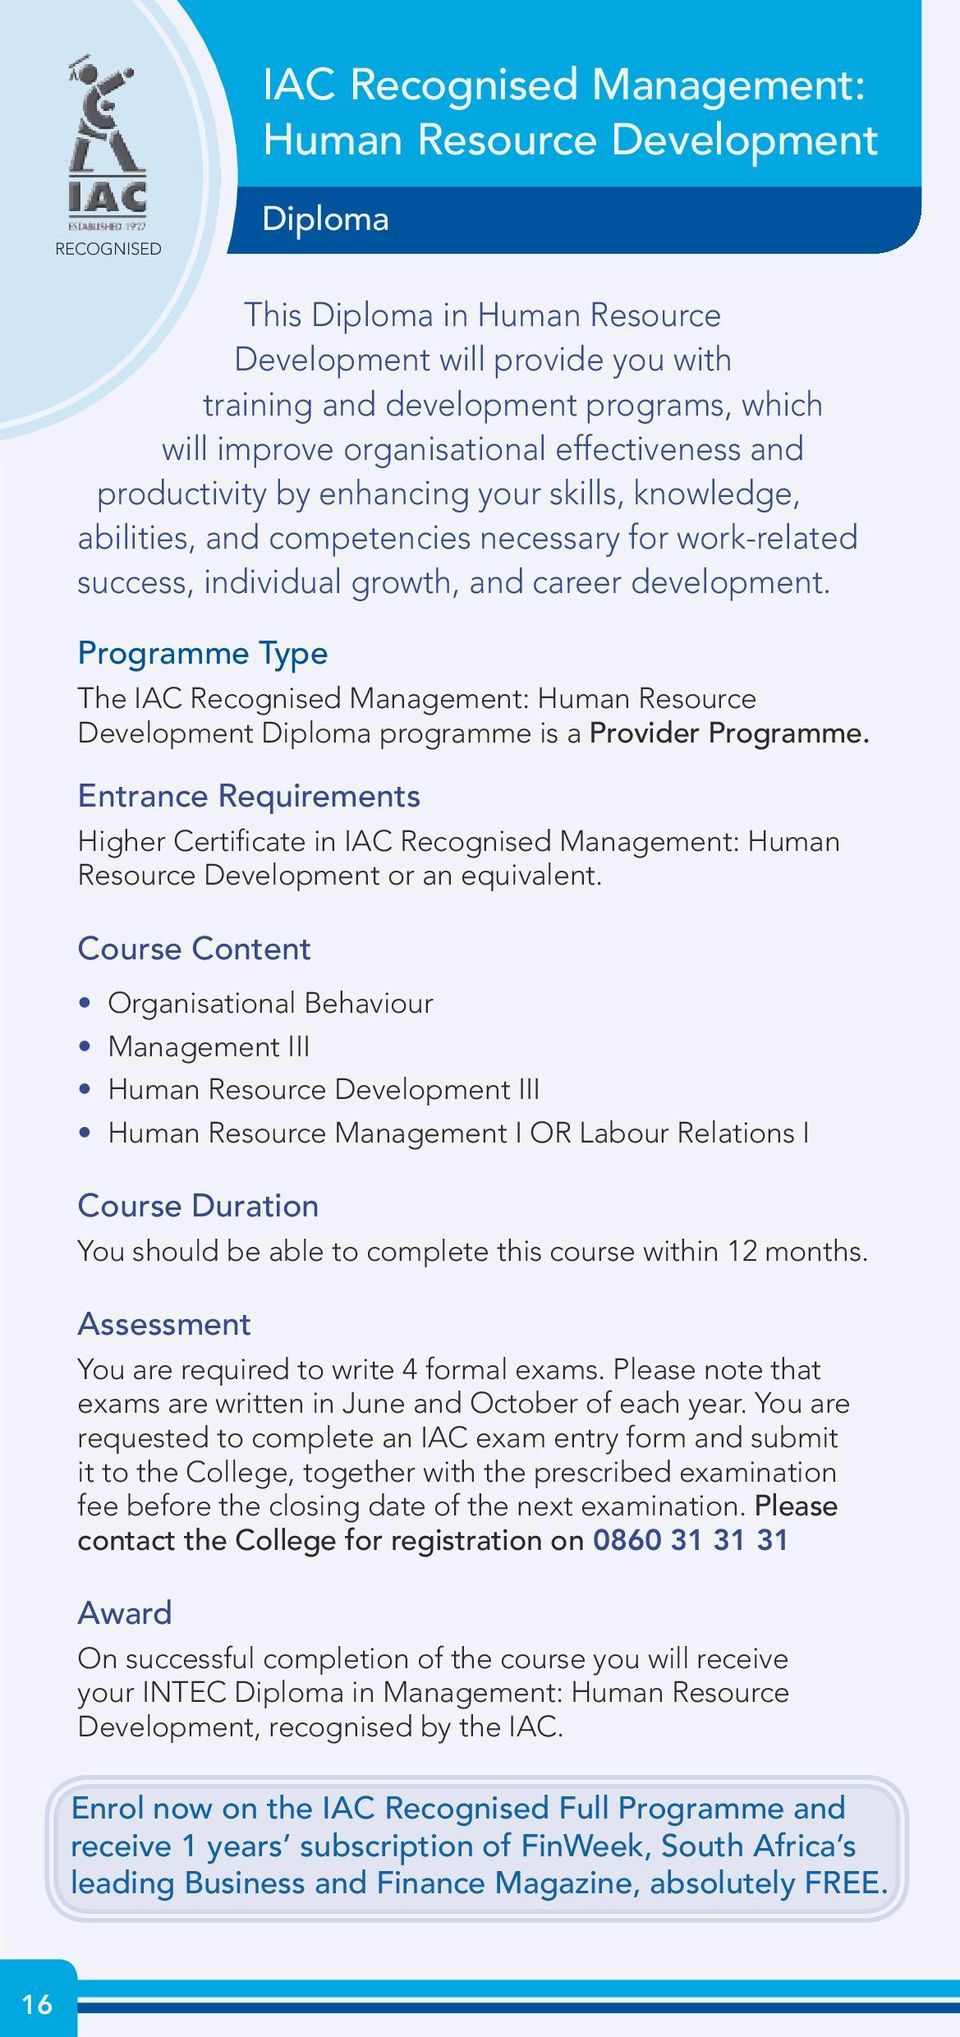 The IAC Recognised Management: Human Resource Development Diploma programme is a Provider Programme.